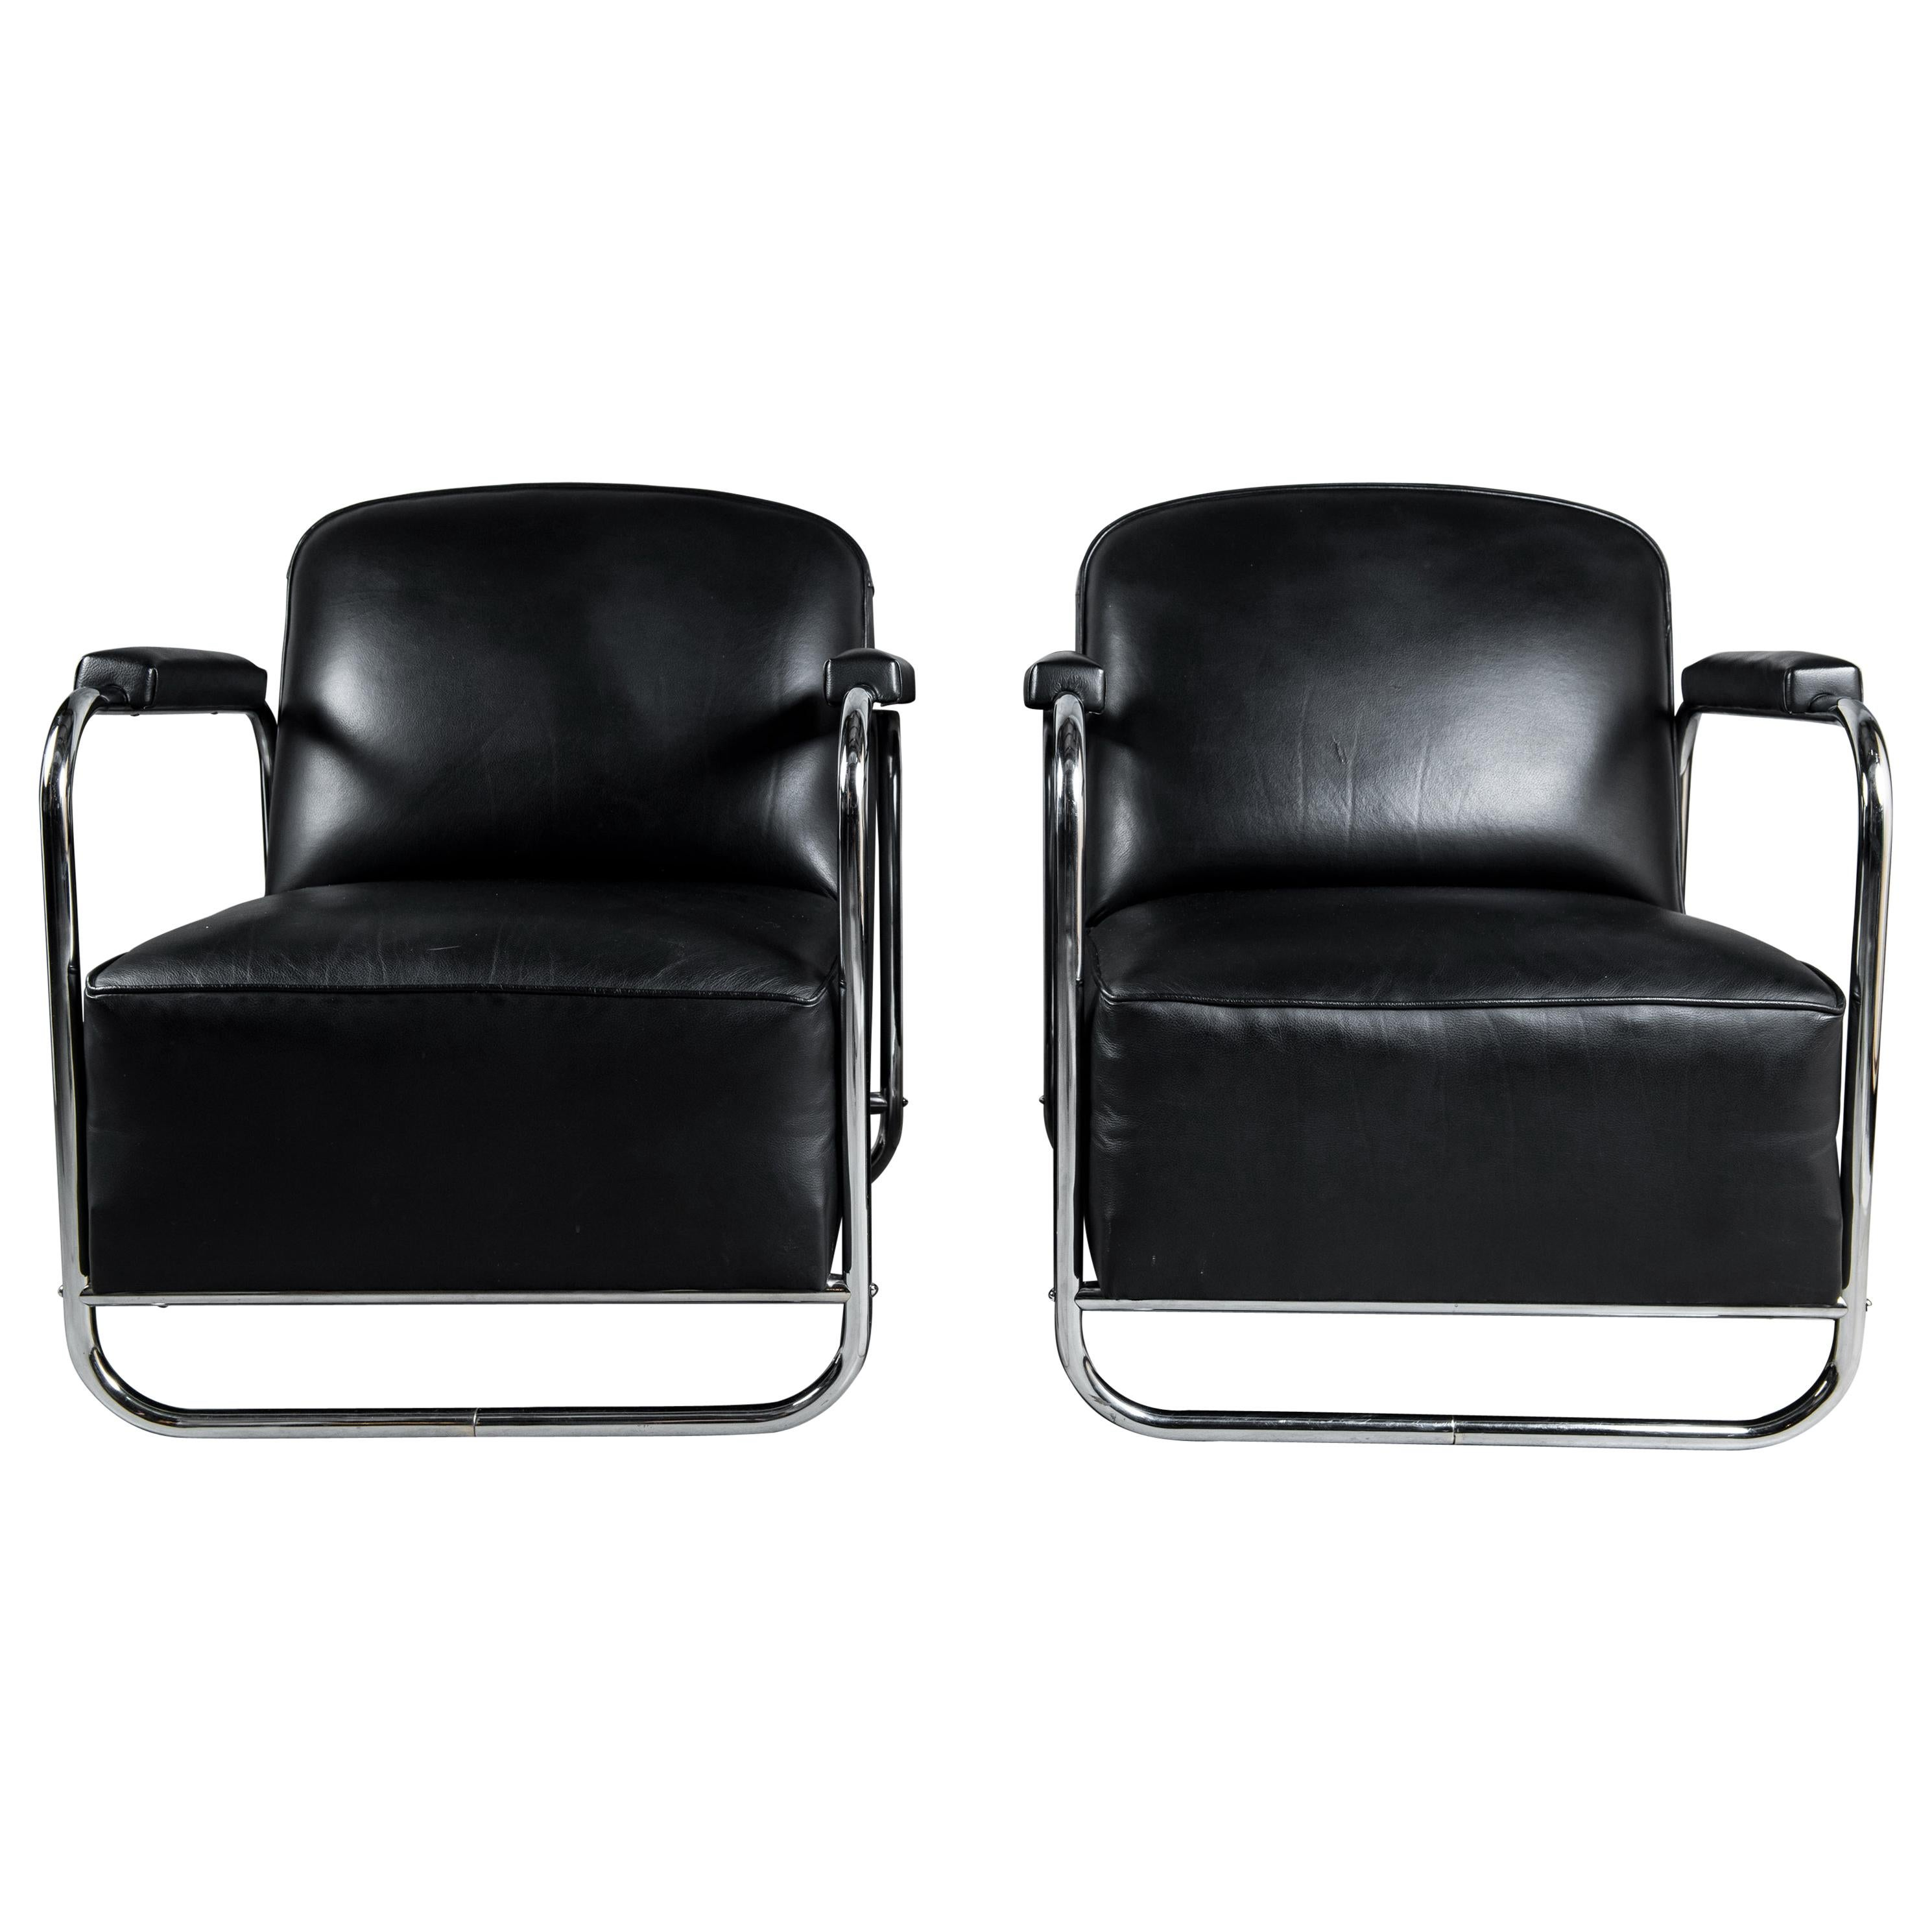 Pair of Leather and Chrome Armchairs, Midcentury, Germany, circa 1940